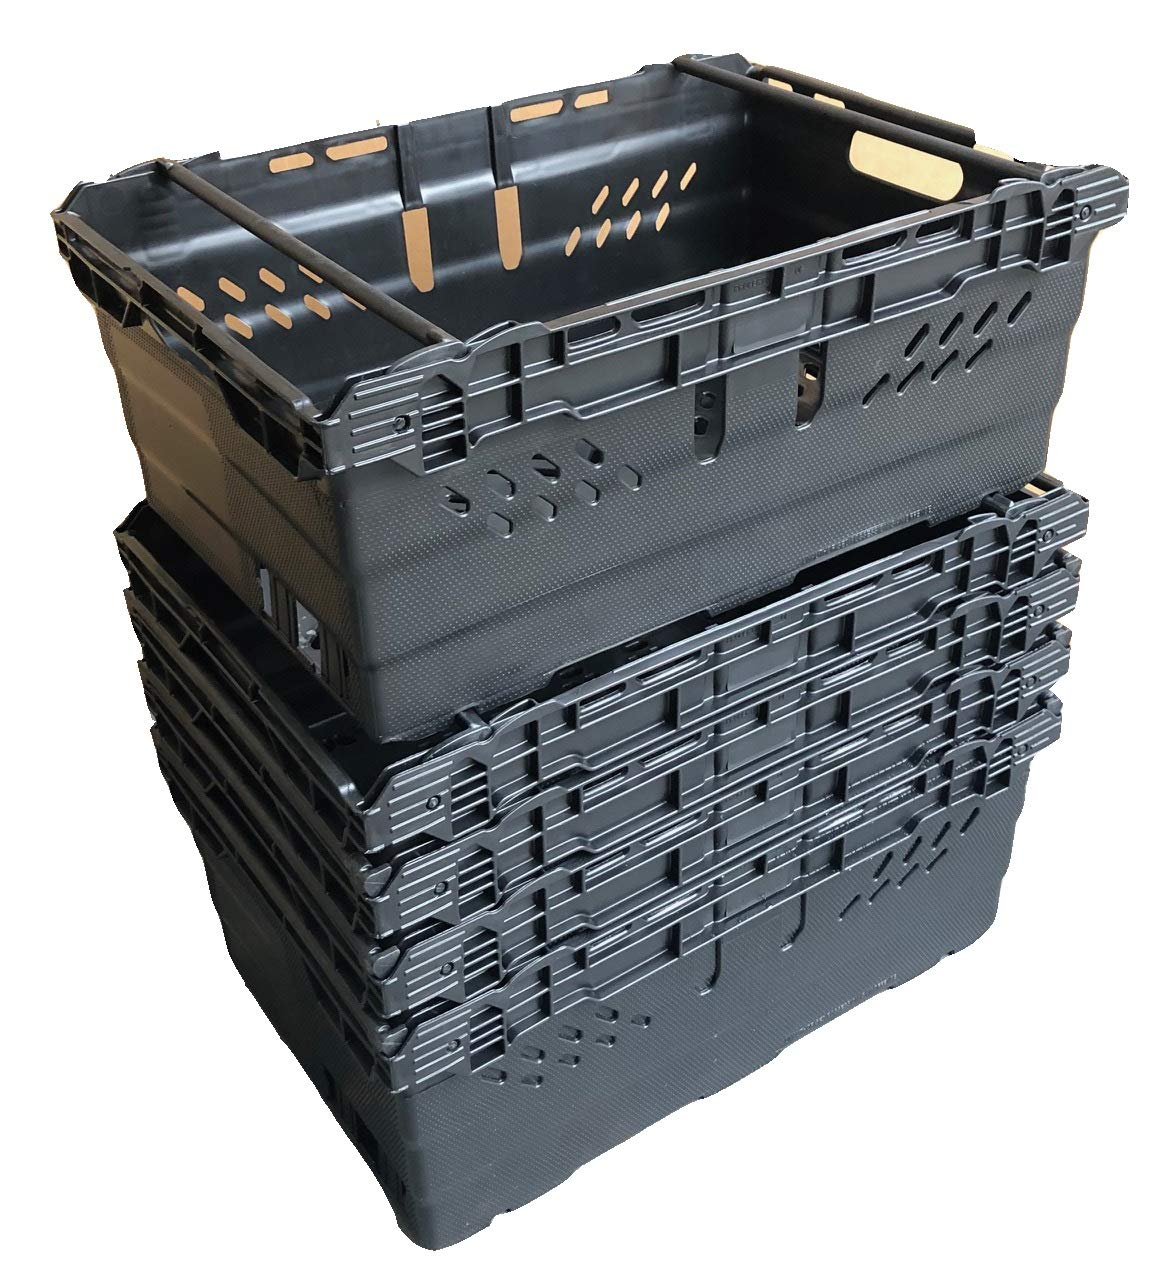 1 46 Litre BLACK Heavy Duty Stack Nest Bale Arm Plastic Supermarket Storage Box Swing Bar Container Crate!